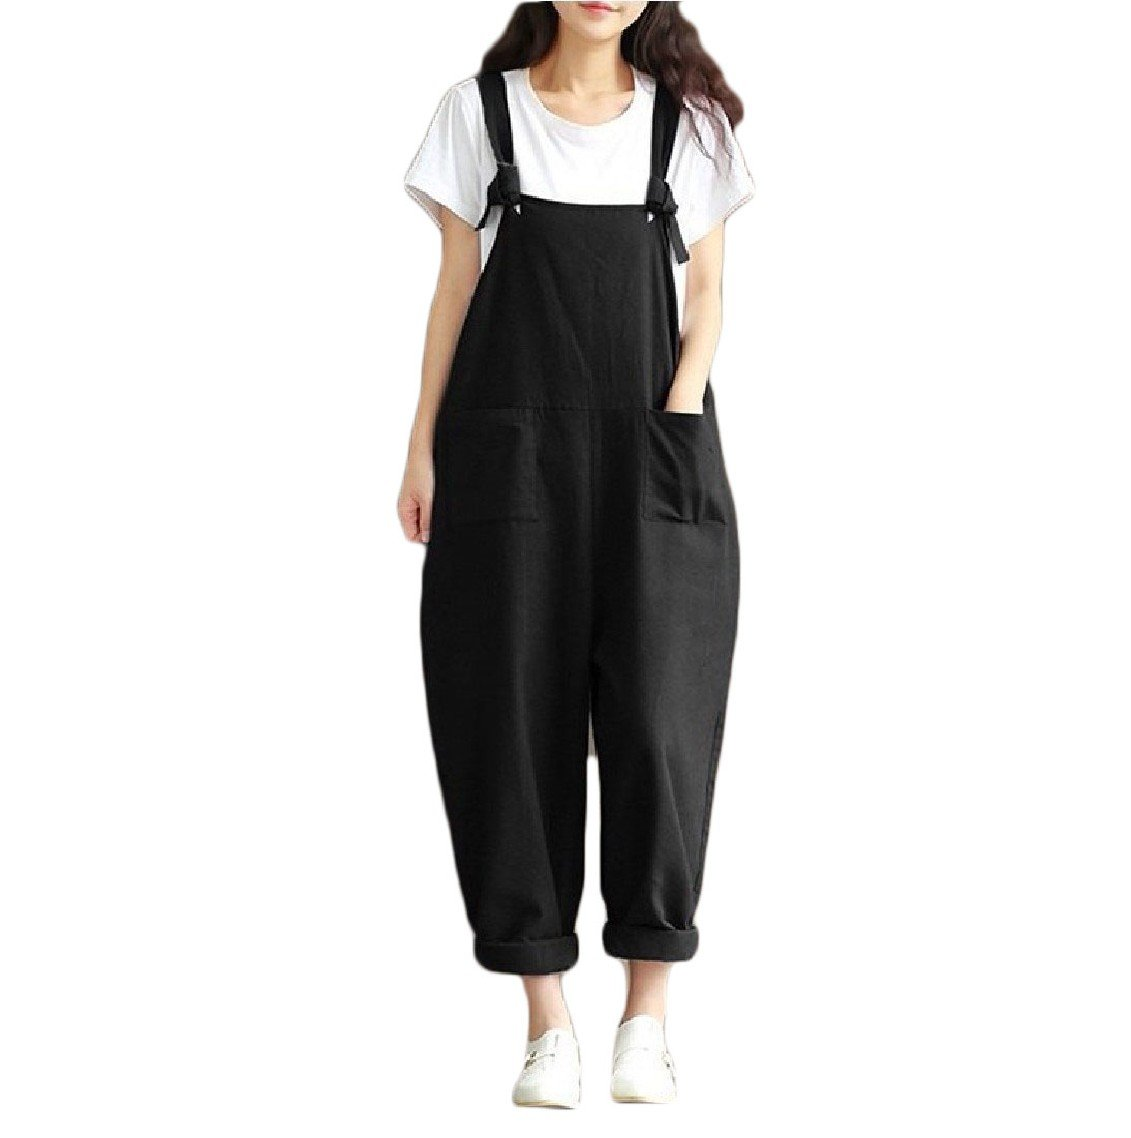 4f6e270d5d Amazon.com  Mfasica Women s Oversized Solid-Colored Pocket Vintage Rompers  Overalls  Clothing